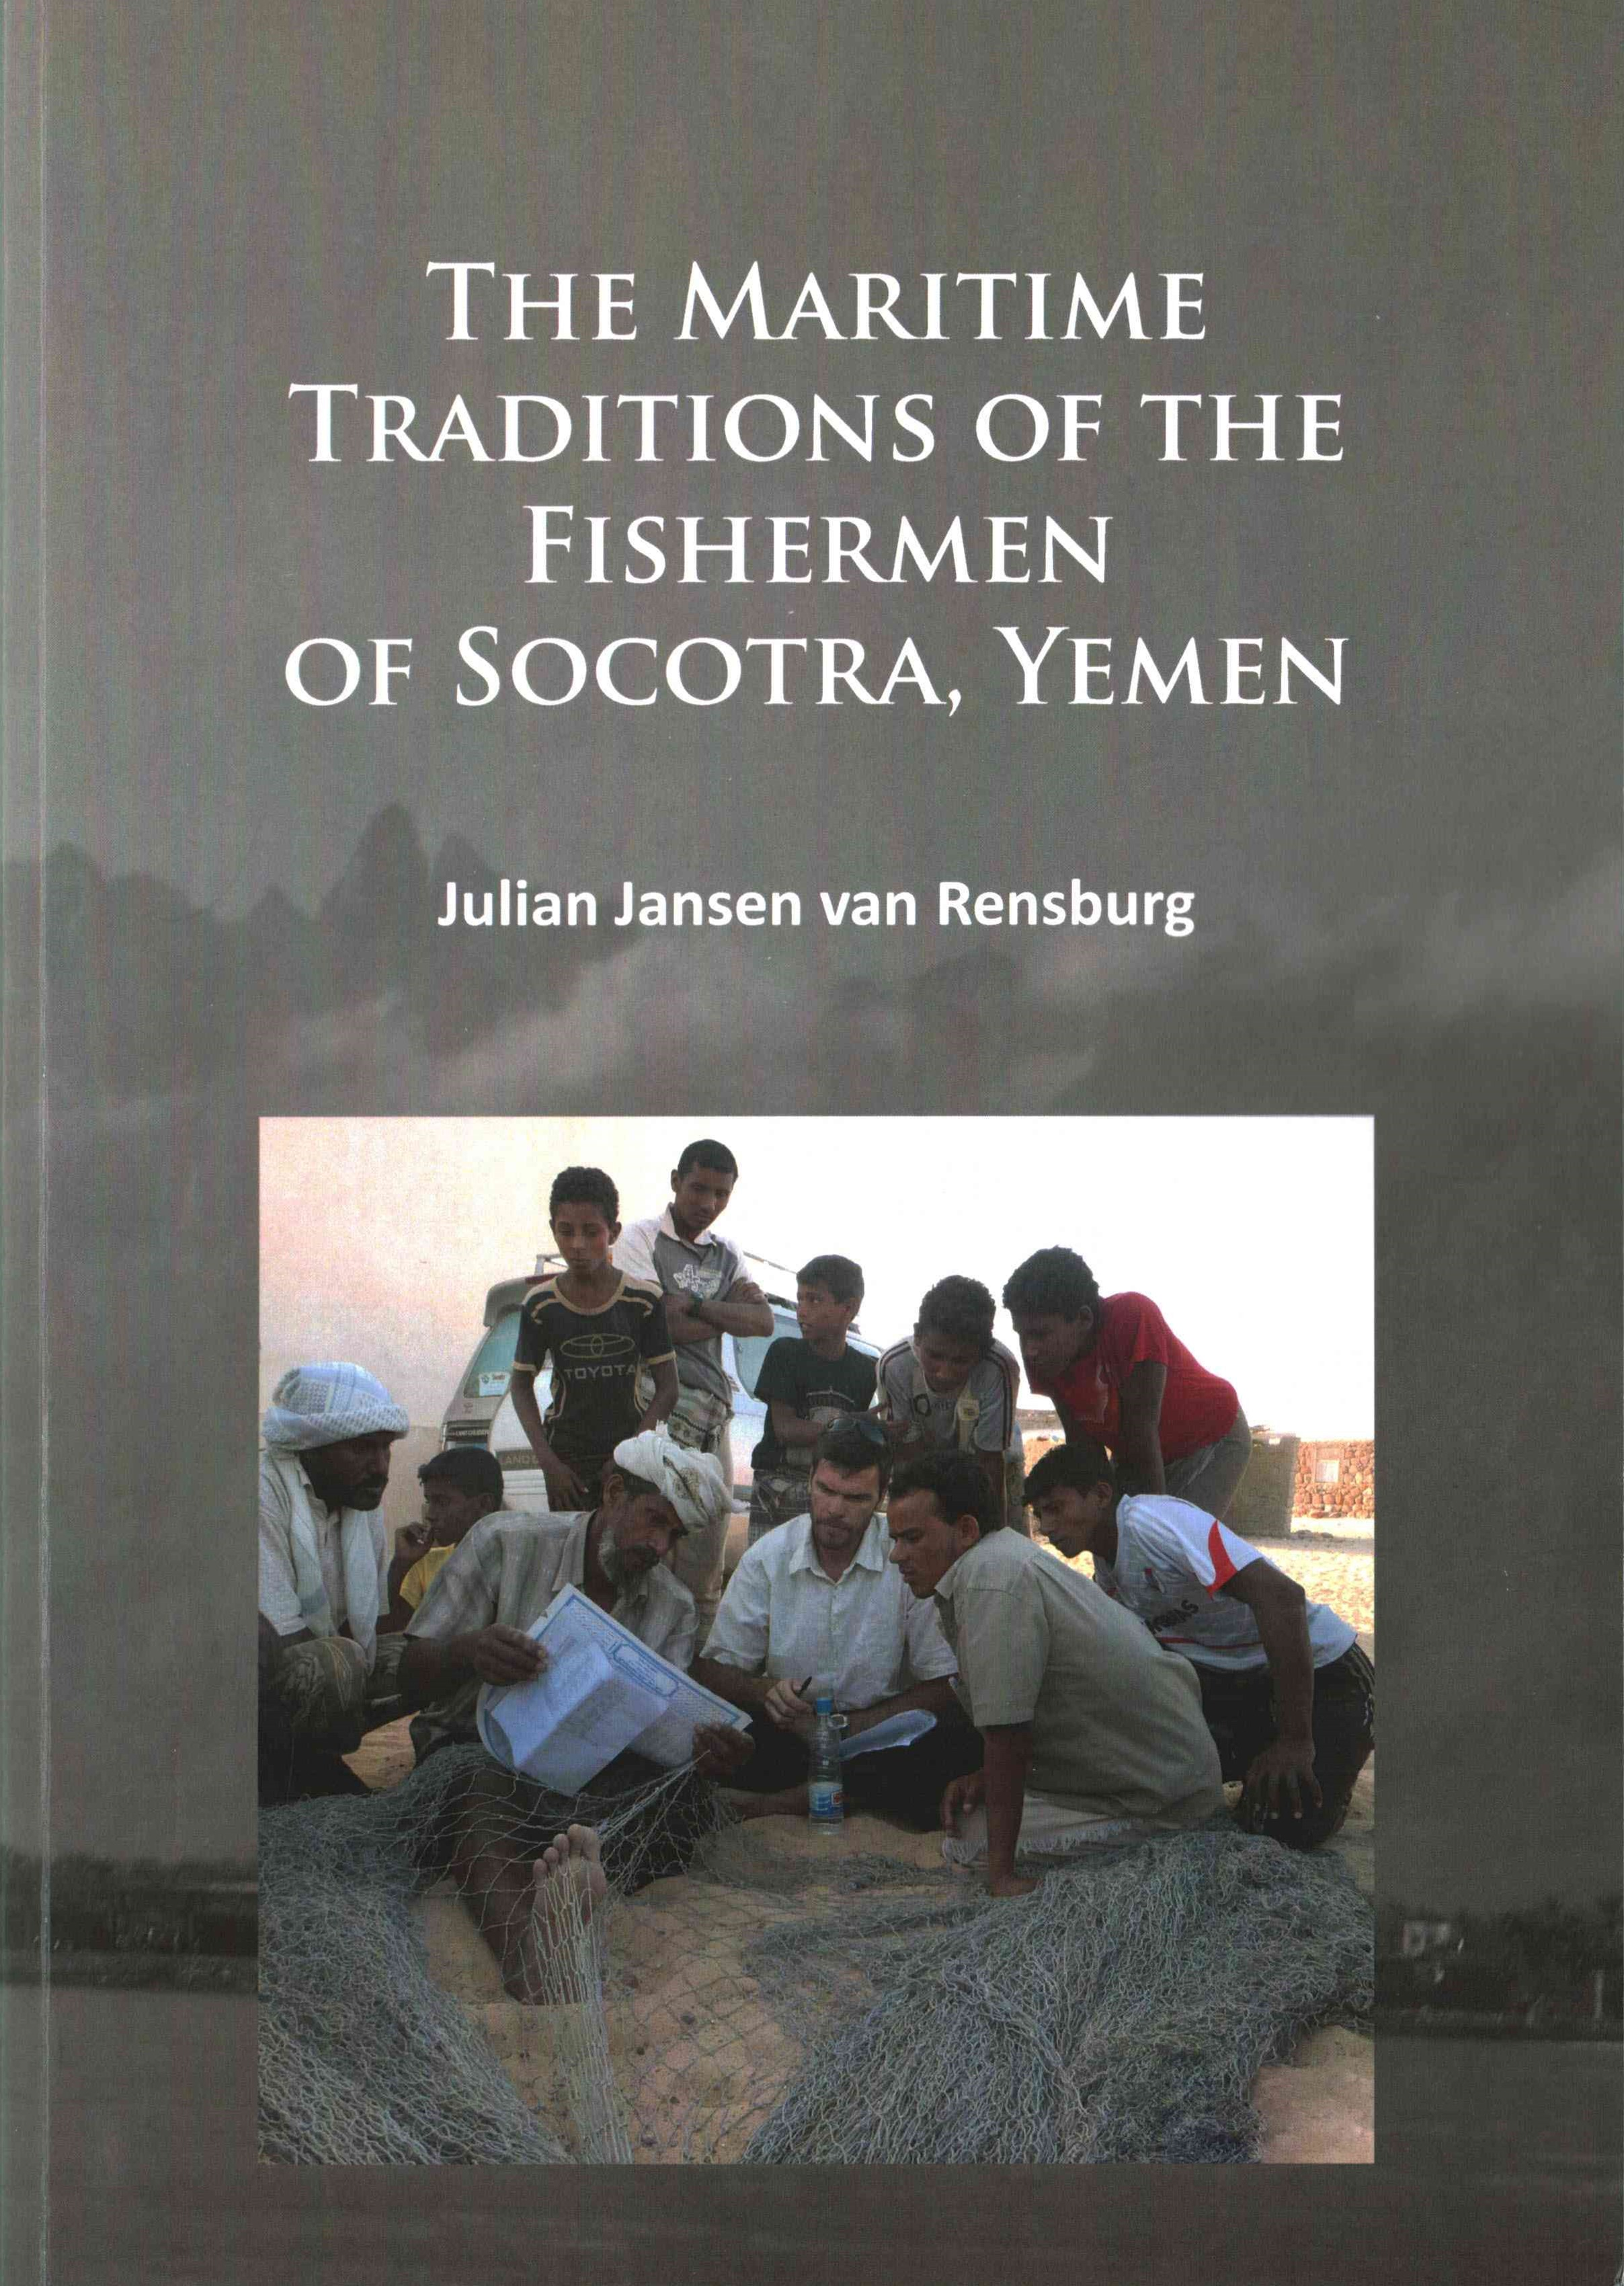 The Maritime Traditions of the Fishermen of Socotra, Yemen